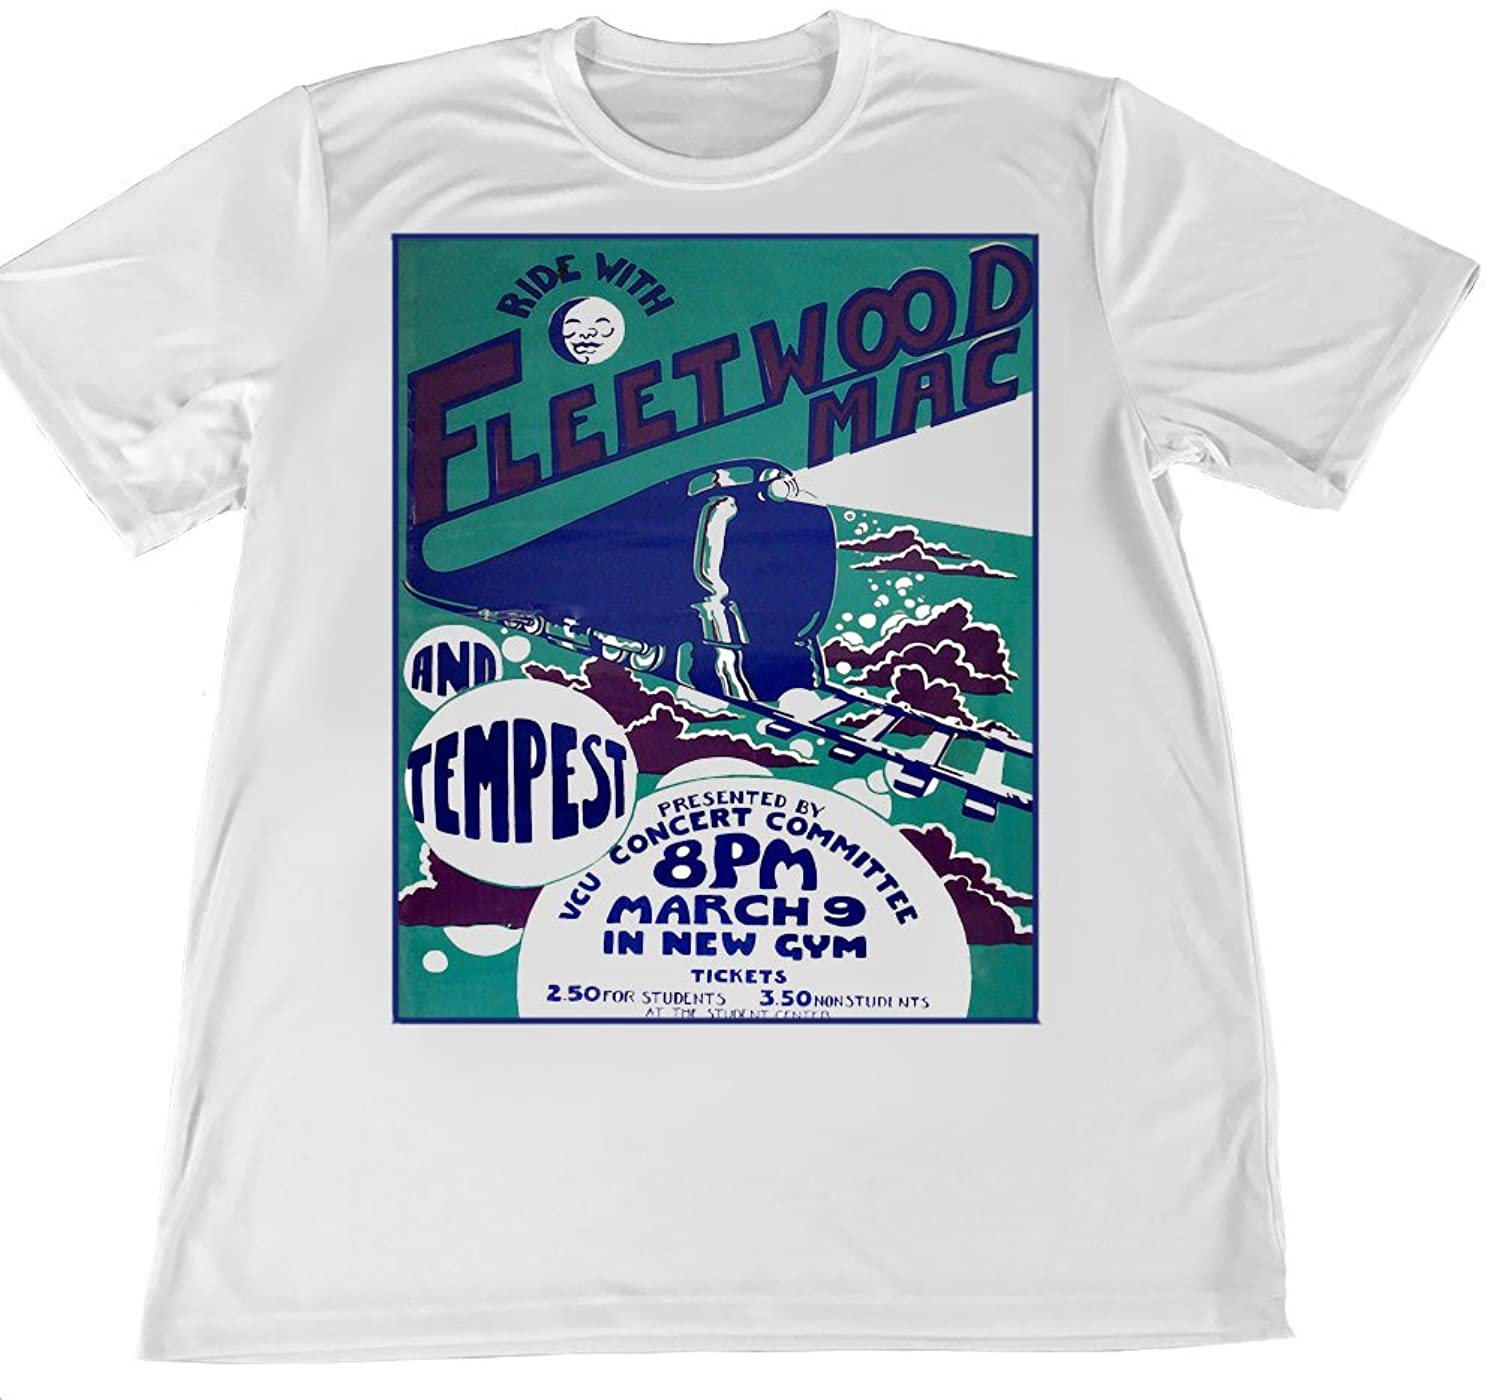 Brotherhood Ride With Fleetwood Mac Concert Poster Wicking T Shirt by Brotherhood